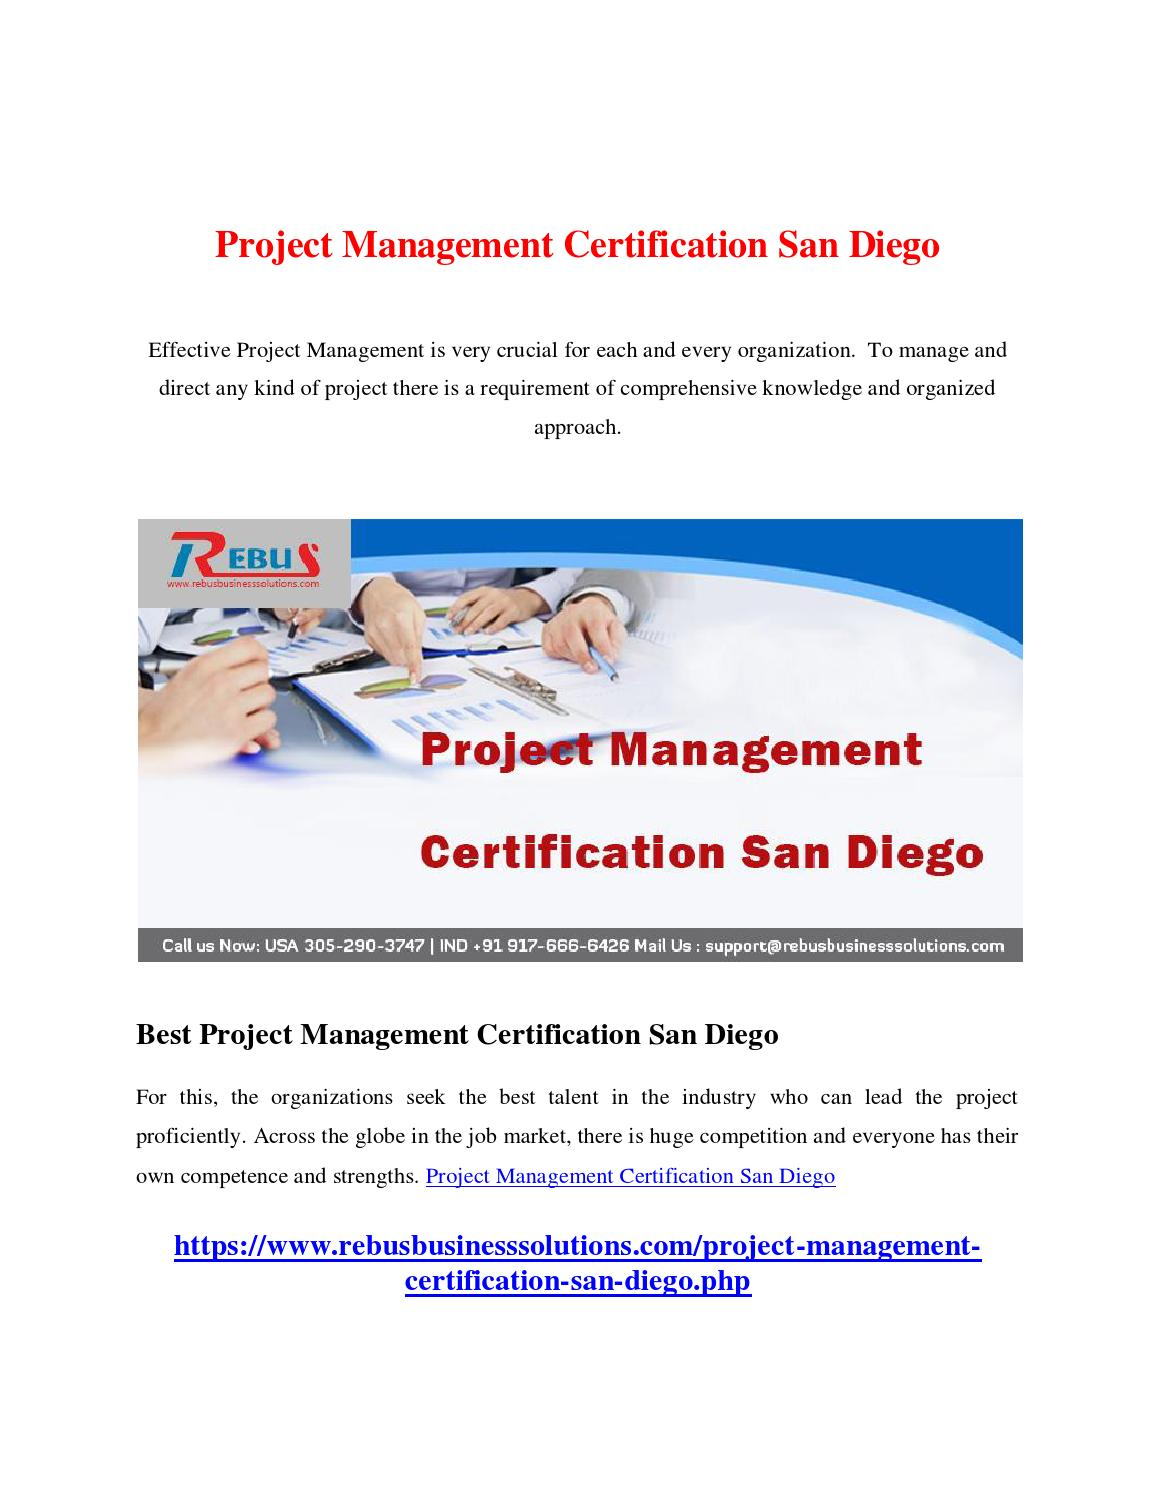 Project Management Certification San Diego By Charlesch01 Issuu